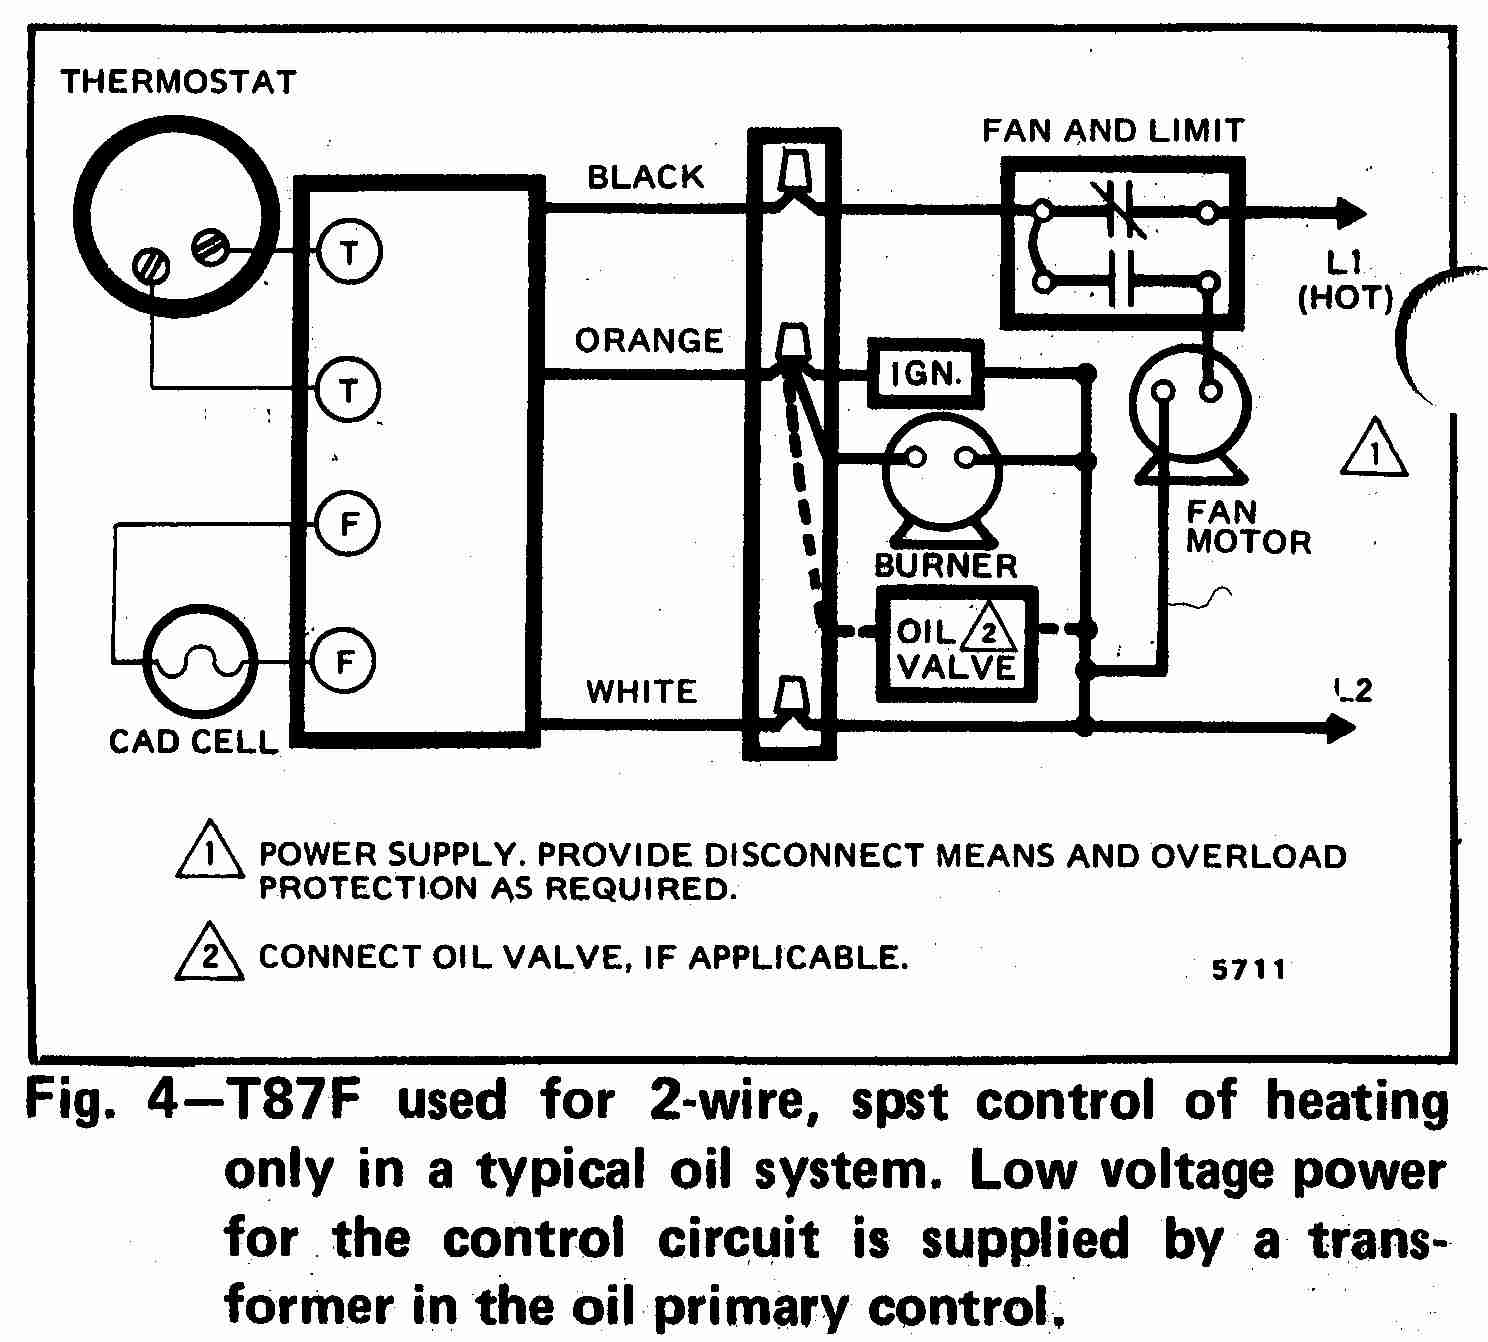 Wiring Diagram For: Room thermostat wiring diagrams for HVAC systems,Design